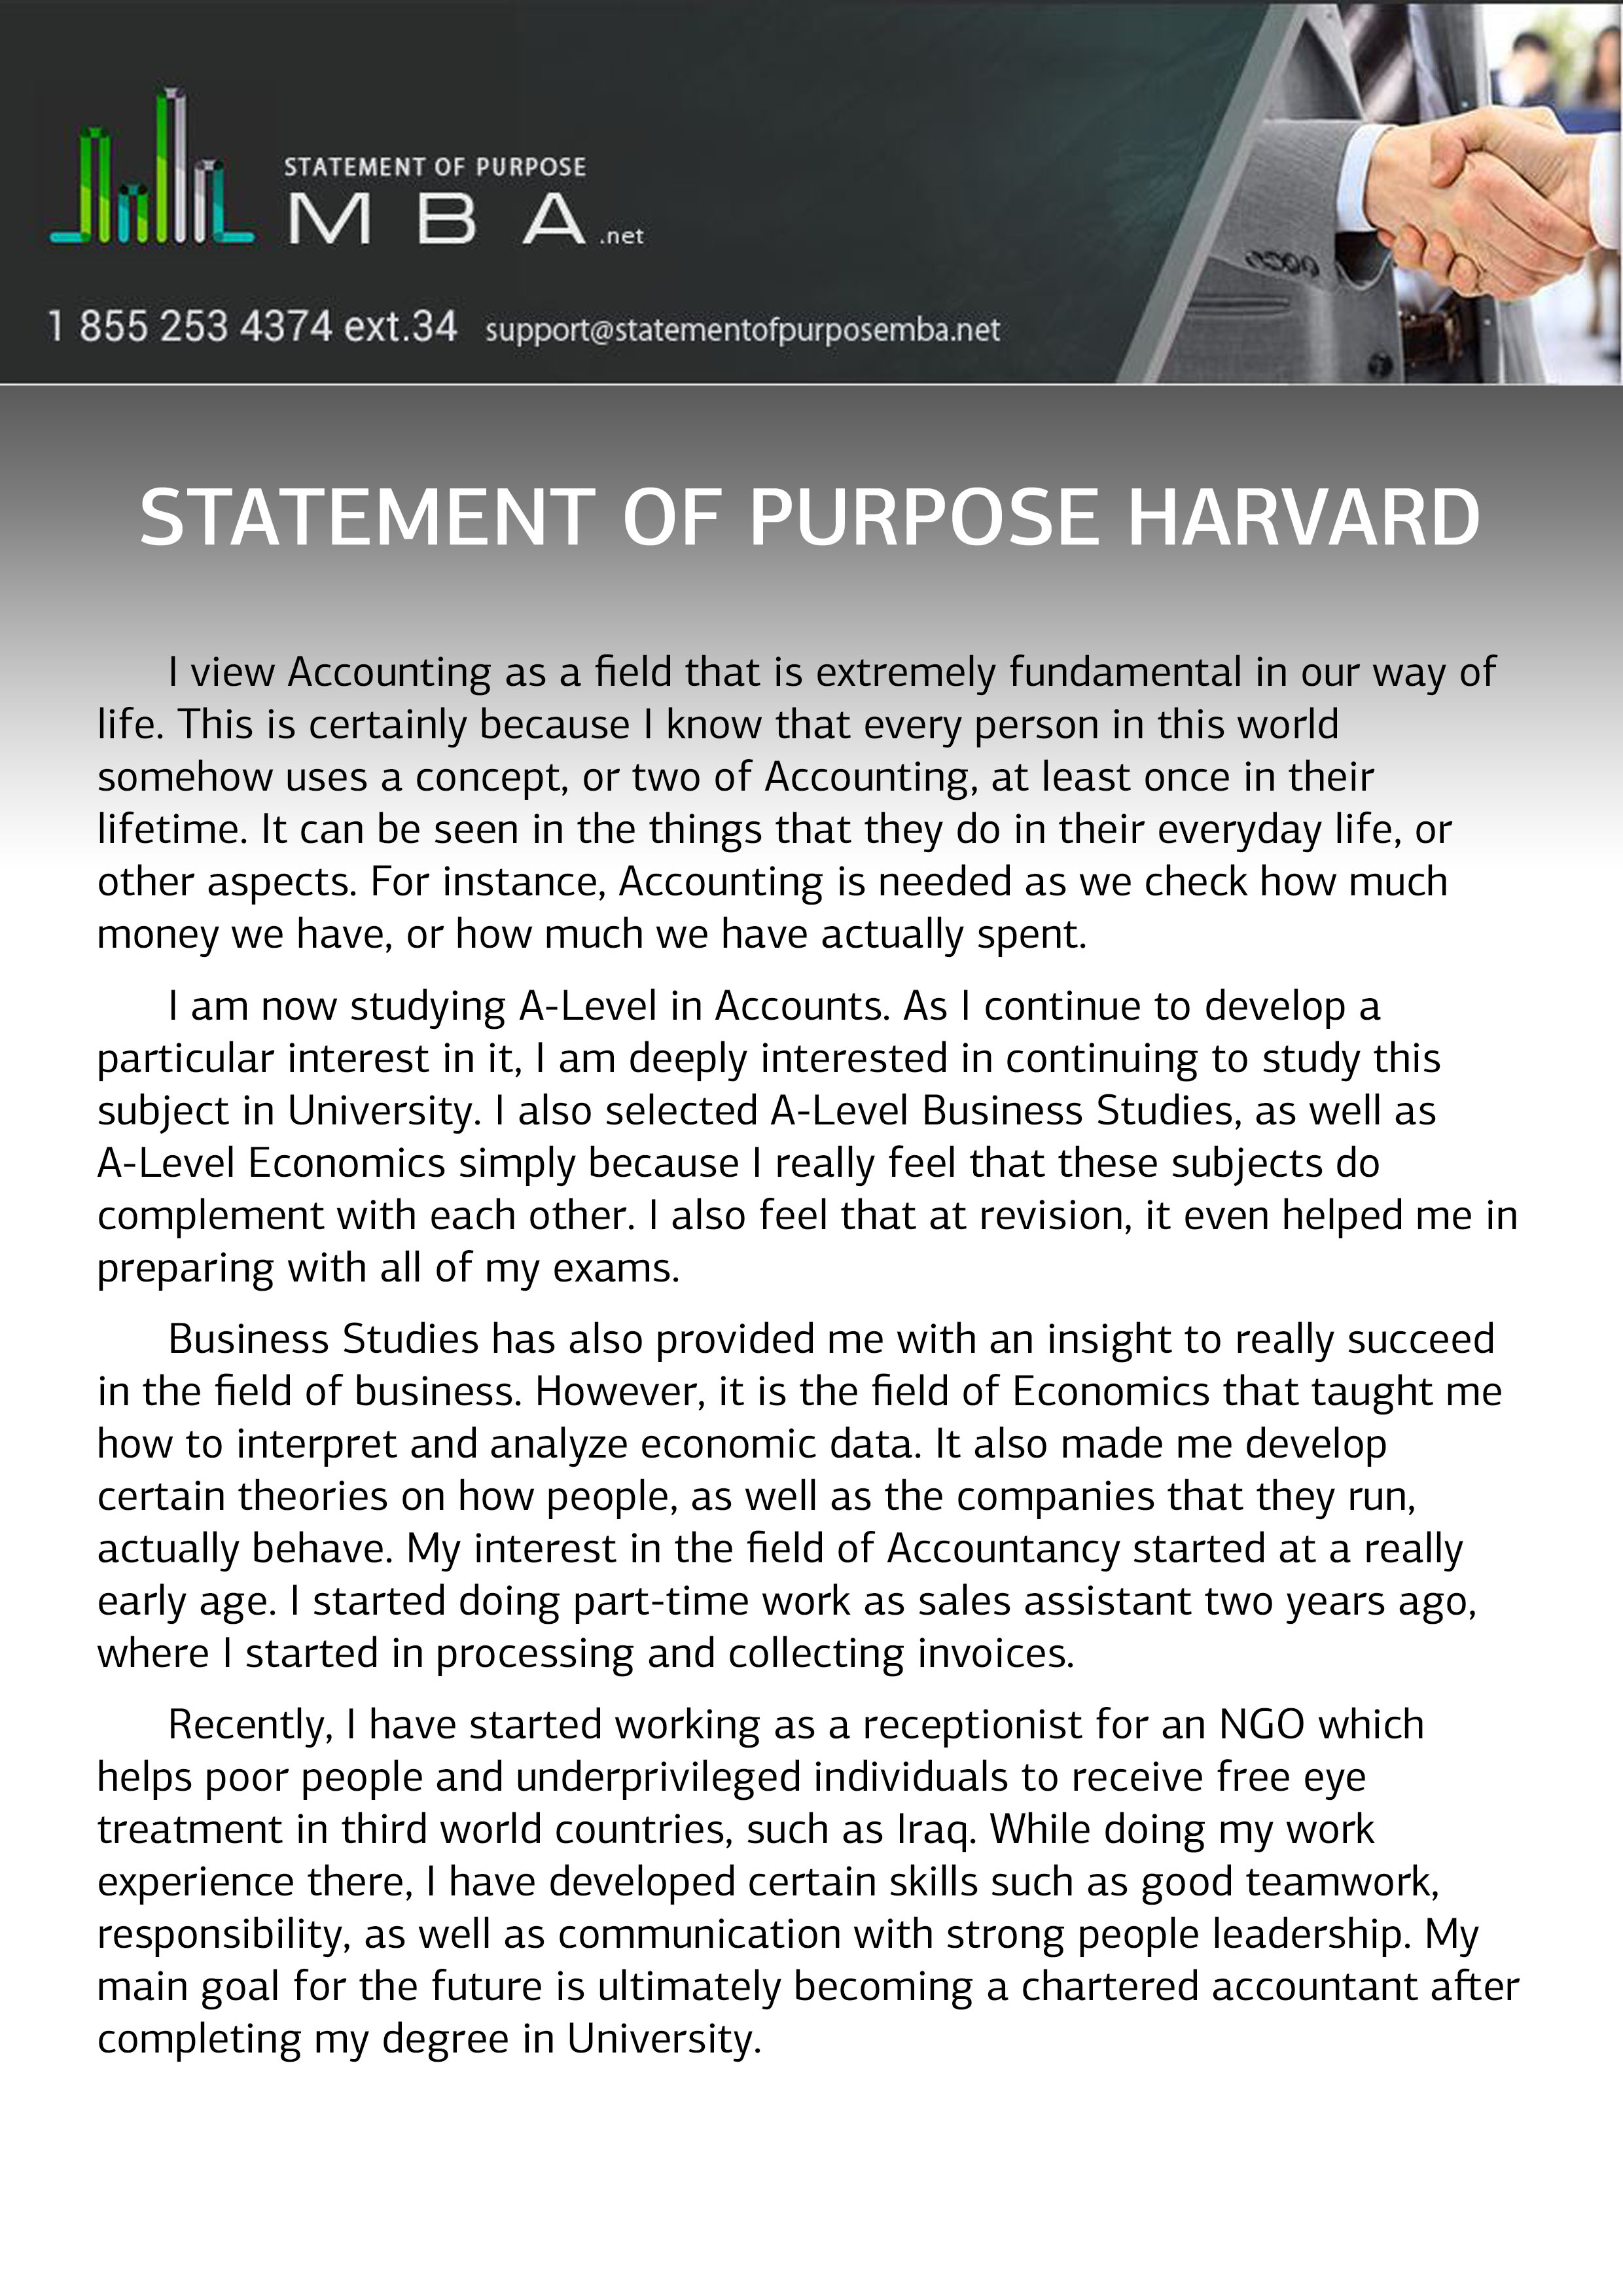 002 Stanford Mba Essay Sample Harvard Business School Tips Statement Of Pu Application Essays Length Questions Successfuls Formidable Question 2018 Full